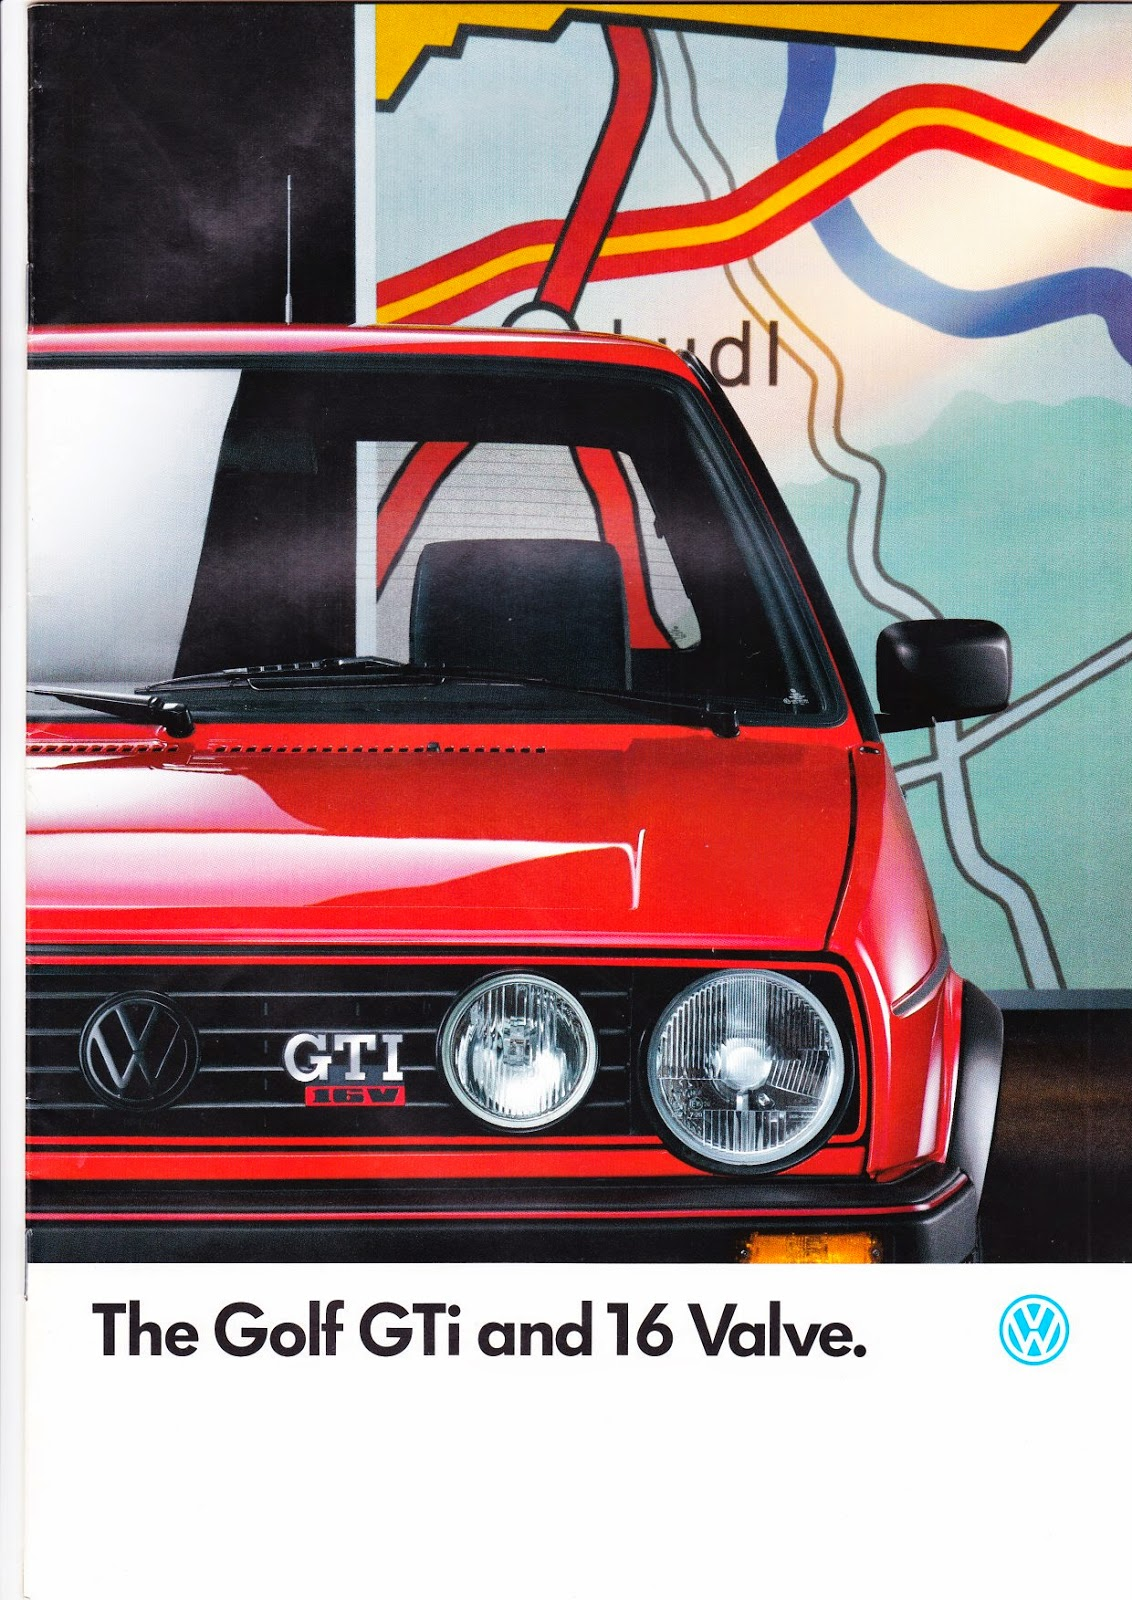 VW Golf GTI 1988 Sales Brochure